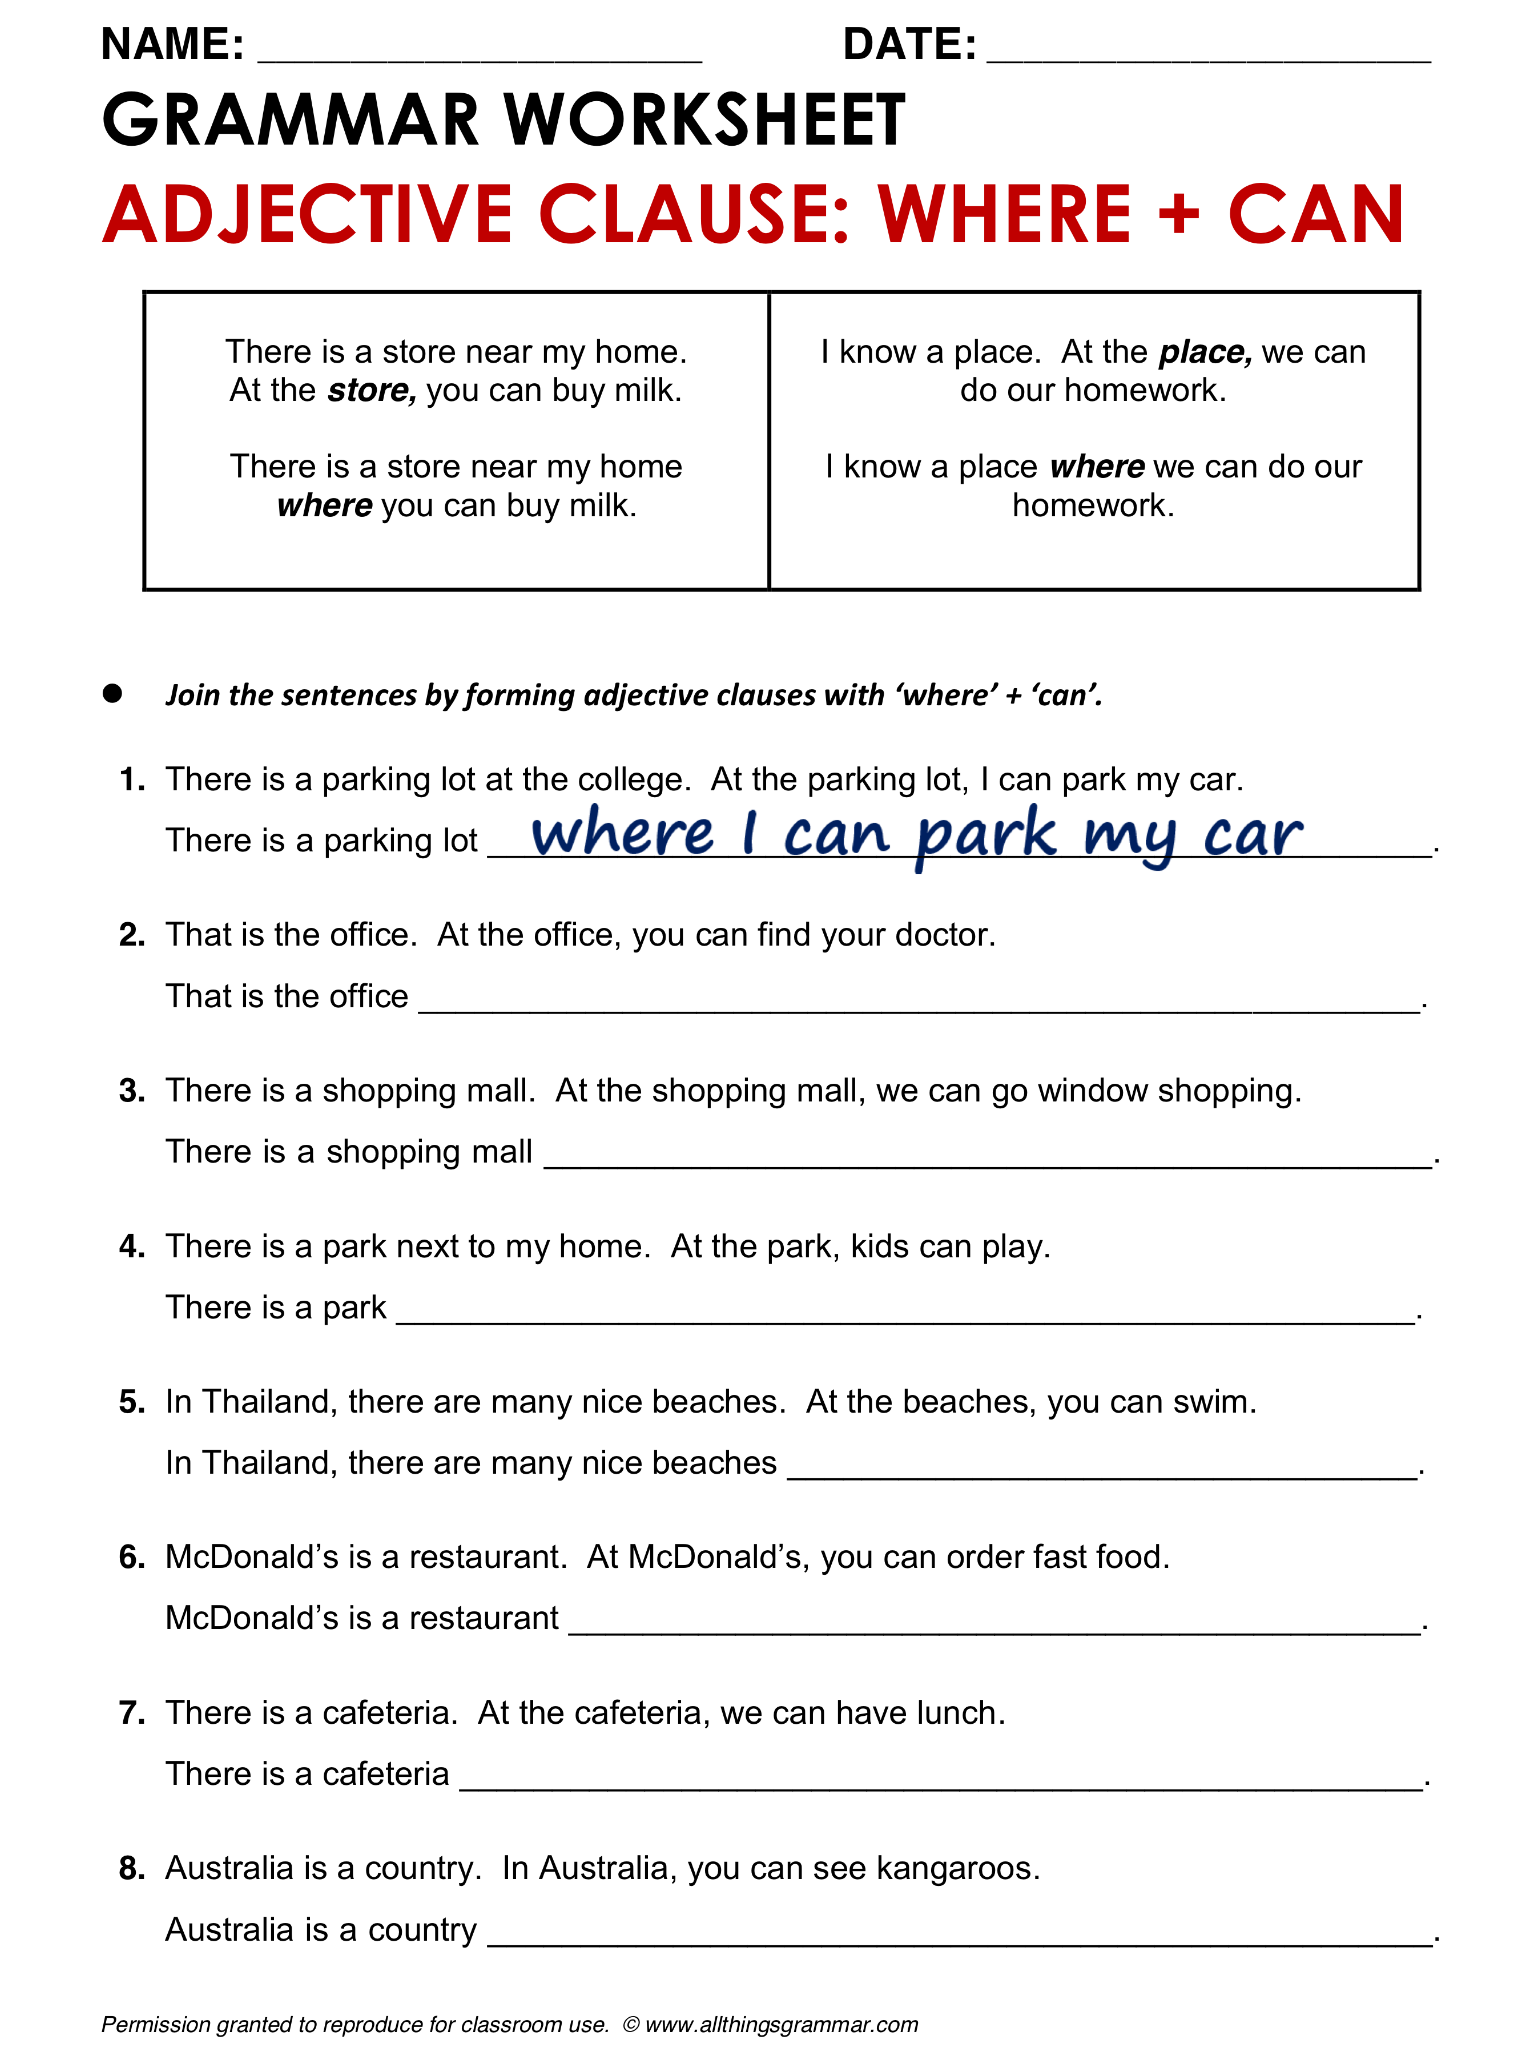 Subjunctive Noun Clauses Worksheet